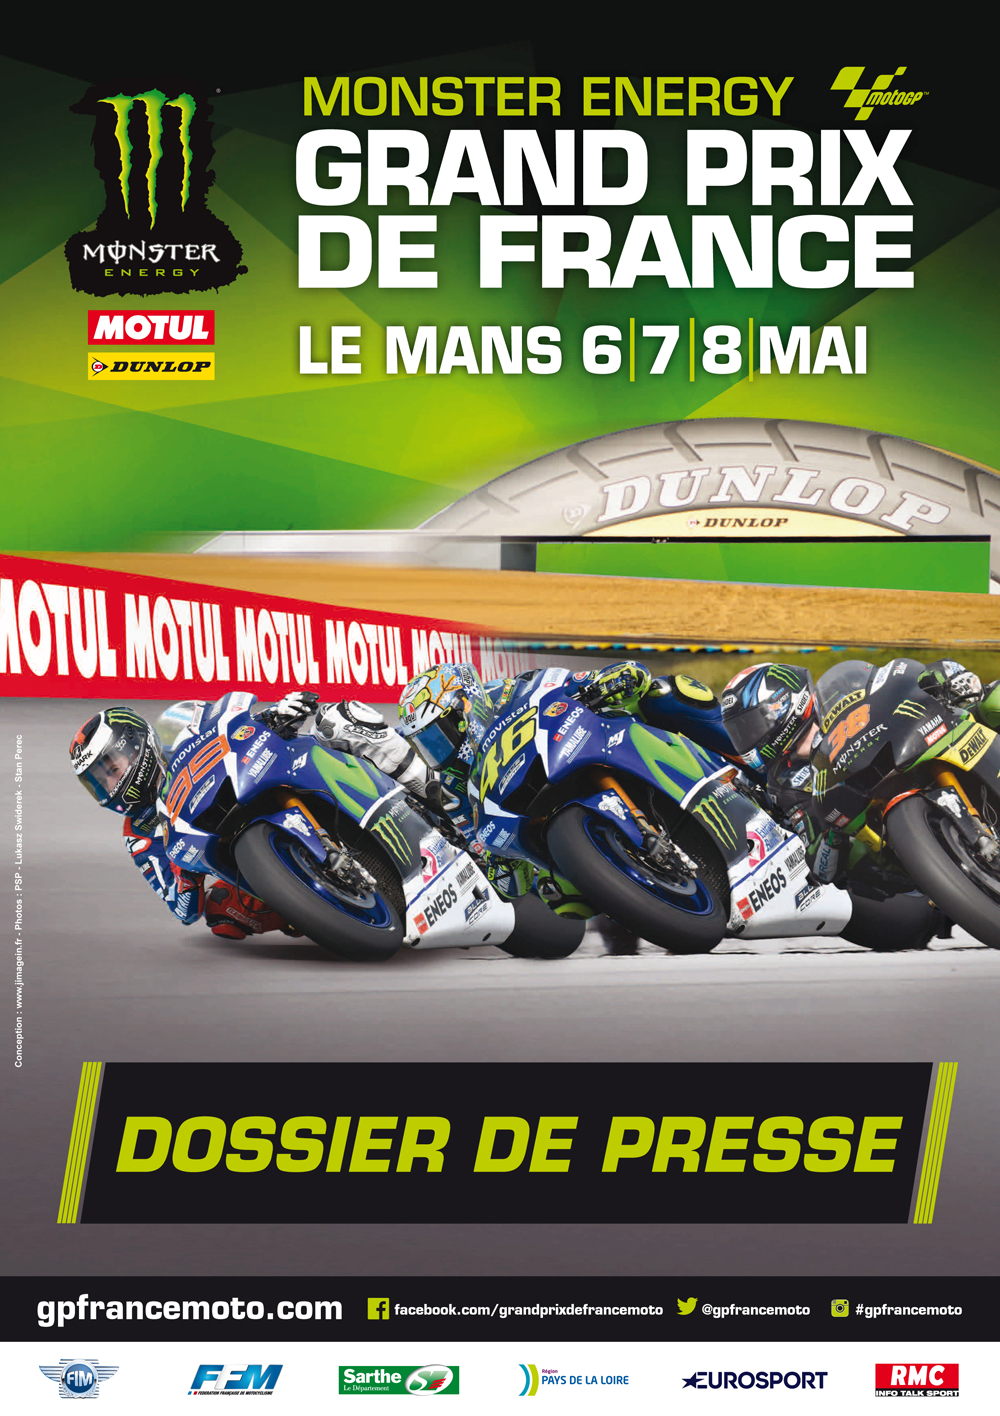 dossier de presse grand prix de france 2016 grand prix de france moto le mans 2018. Black Bedroom Furniture Sets. Home Design Ideas